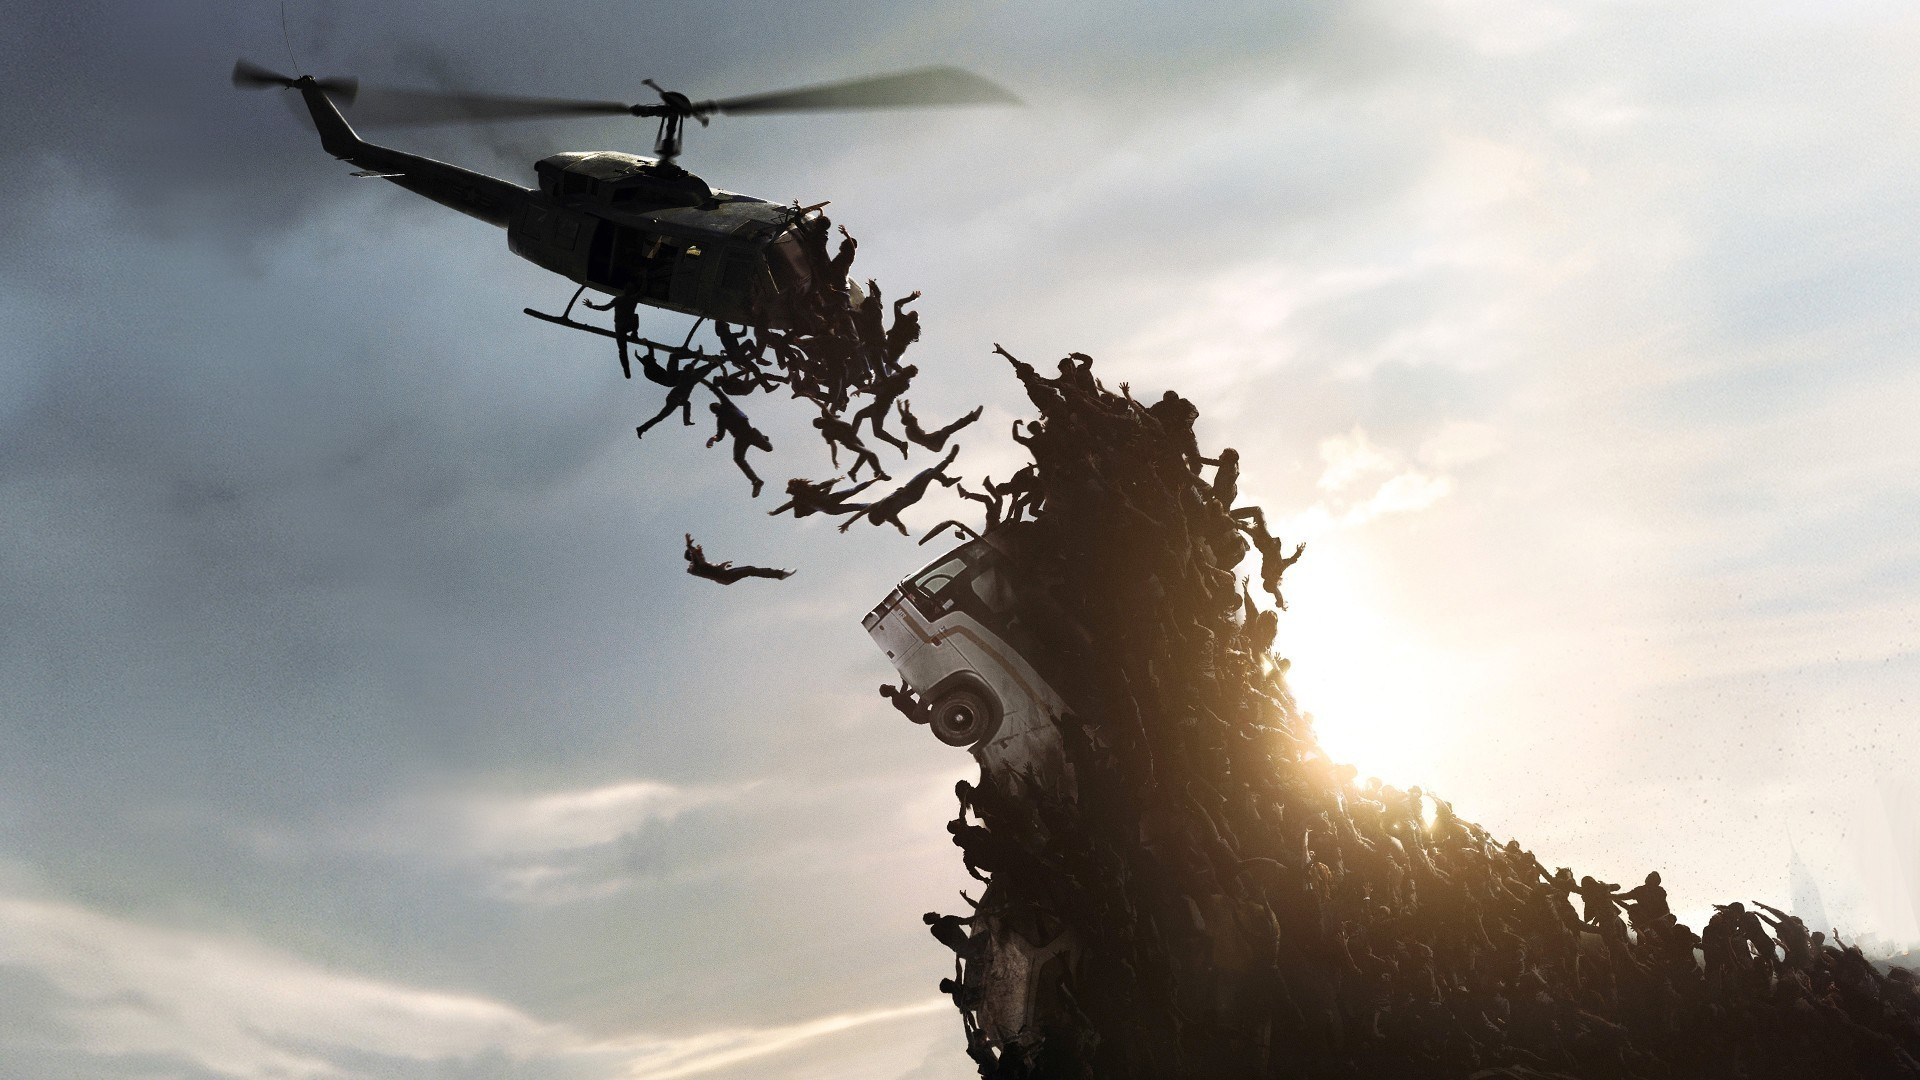 1920x1080 World war z falling skies zombie apocalypse wallpaper .